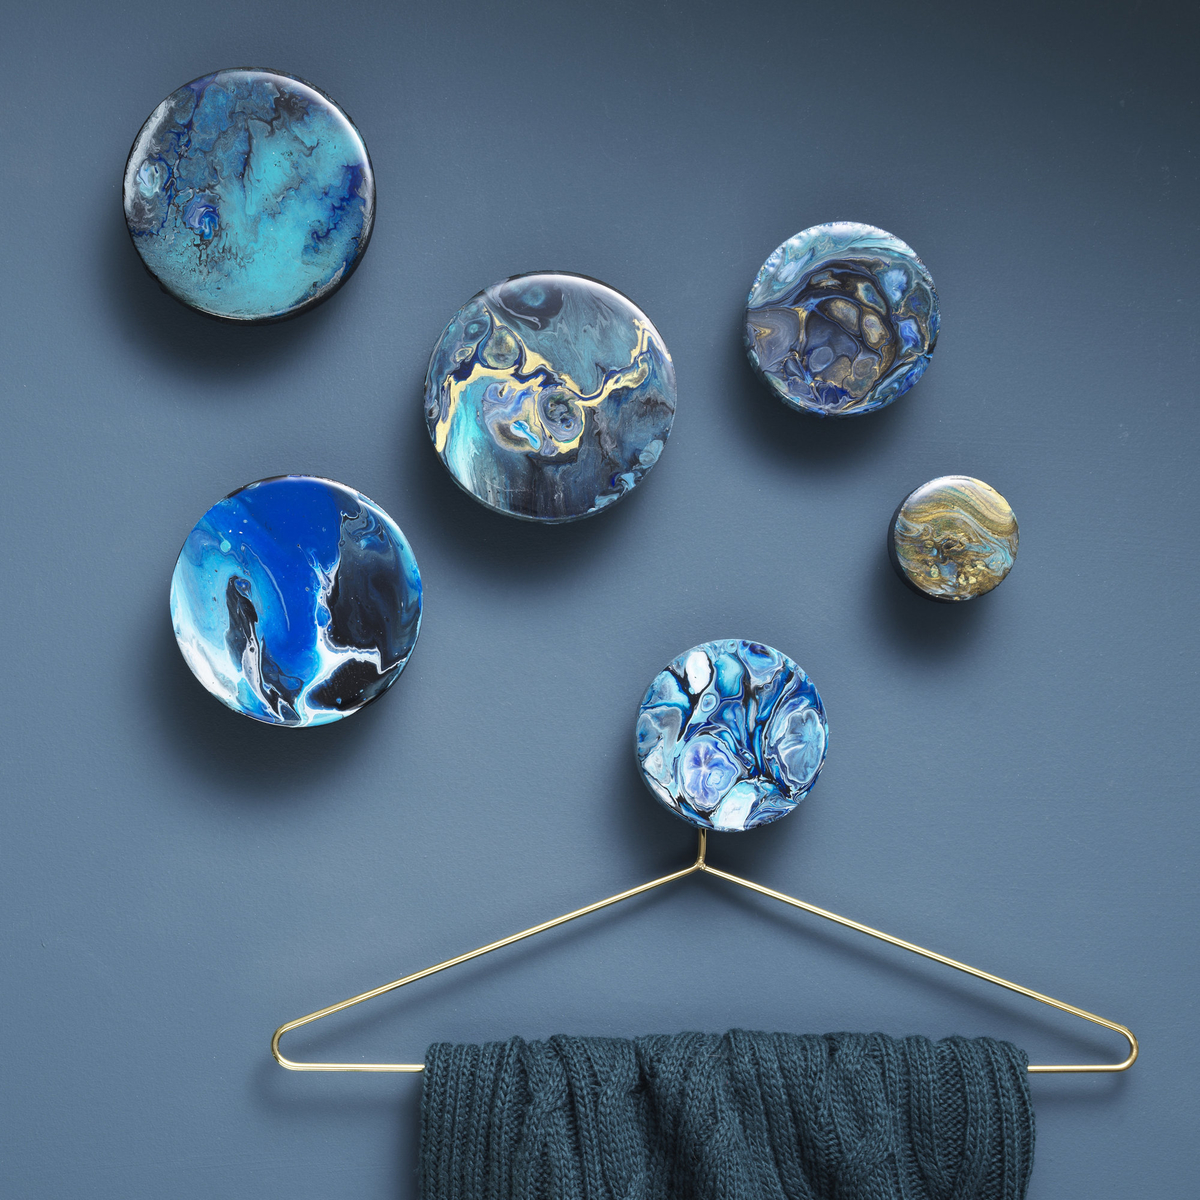 Decorate hanger knobs with poured paint and resin